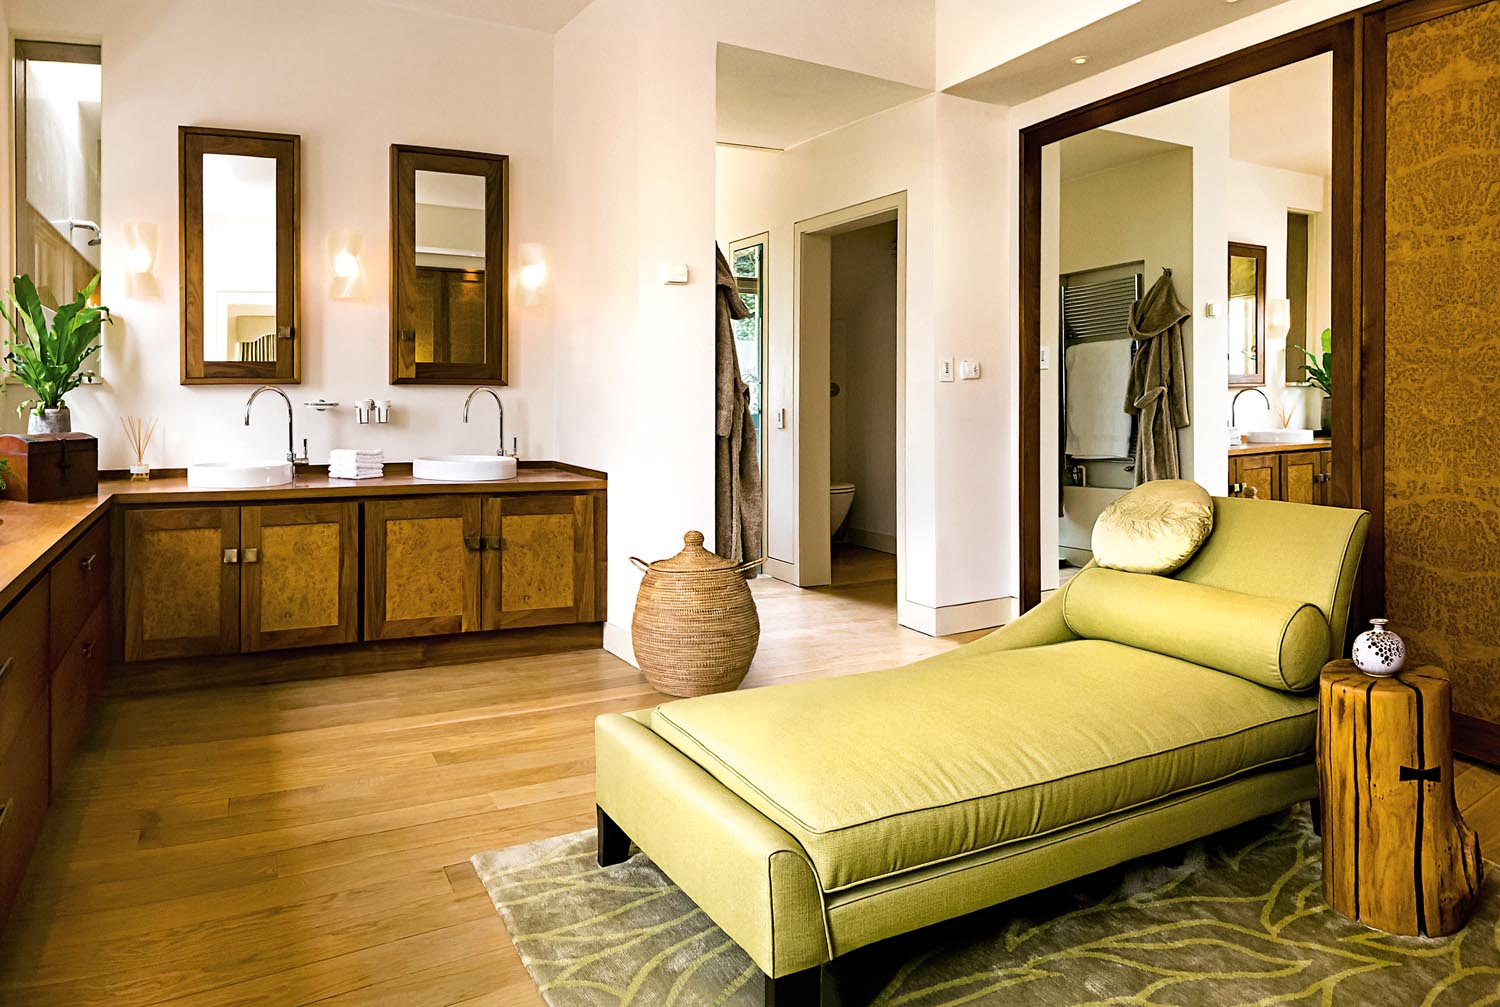 The bathroom serves as a wellness area, with a lounge made for relaxation